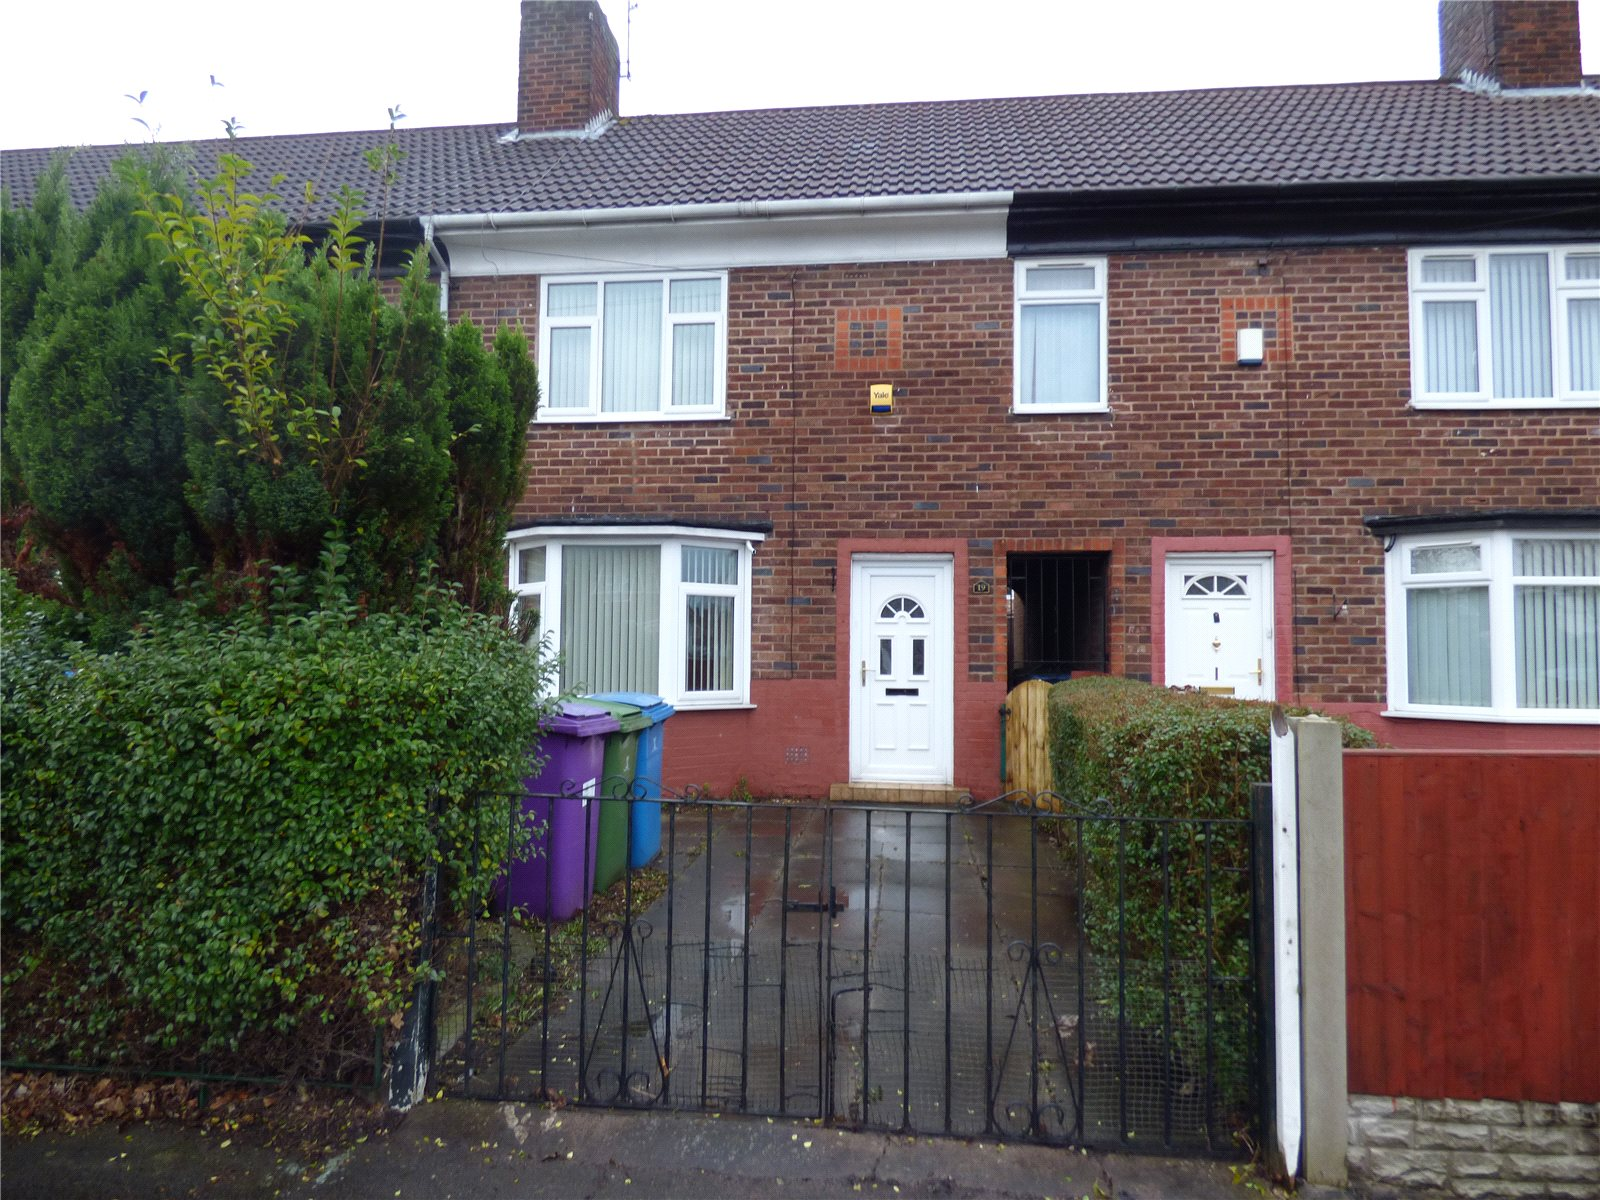 3 Bedrooms Terraced House for sale in Ackers Hall Avenue, Liverpool, Merseyside, L14